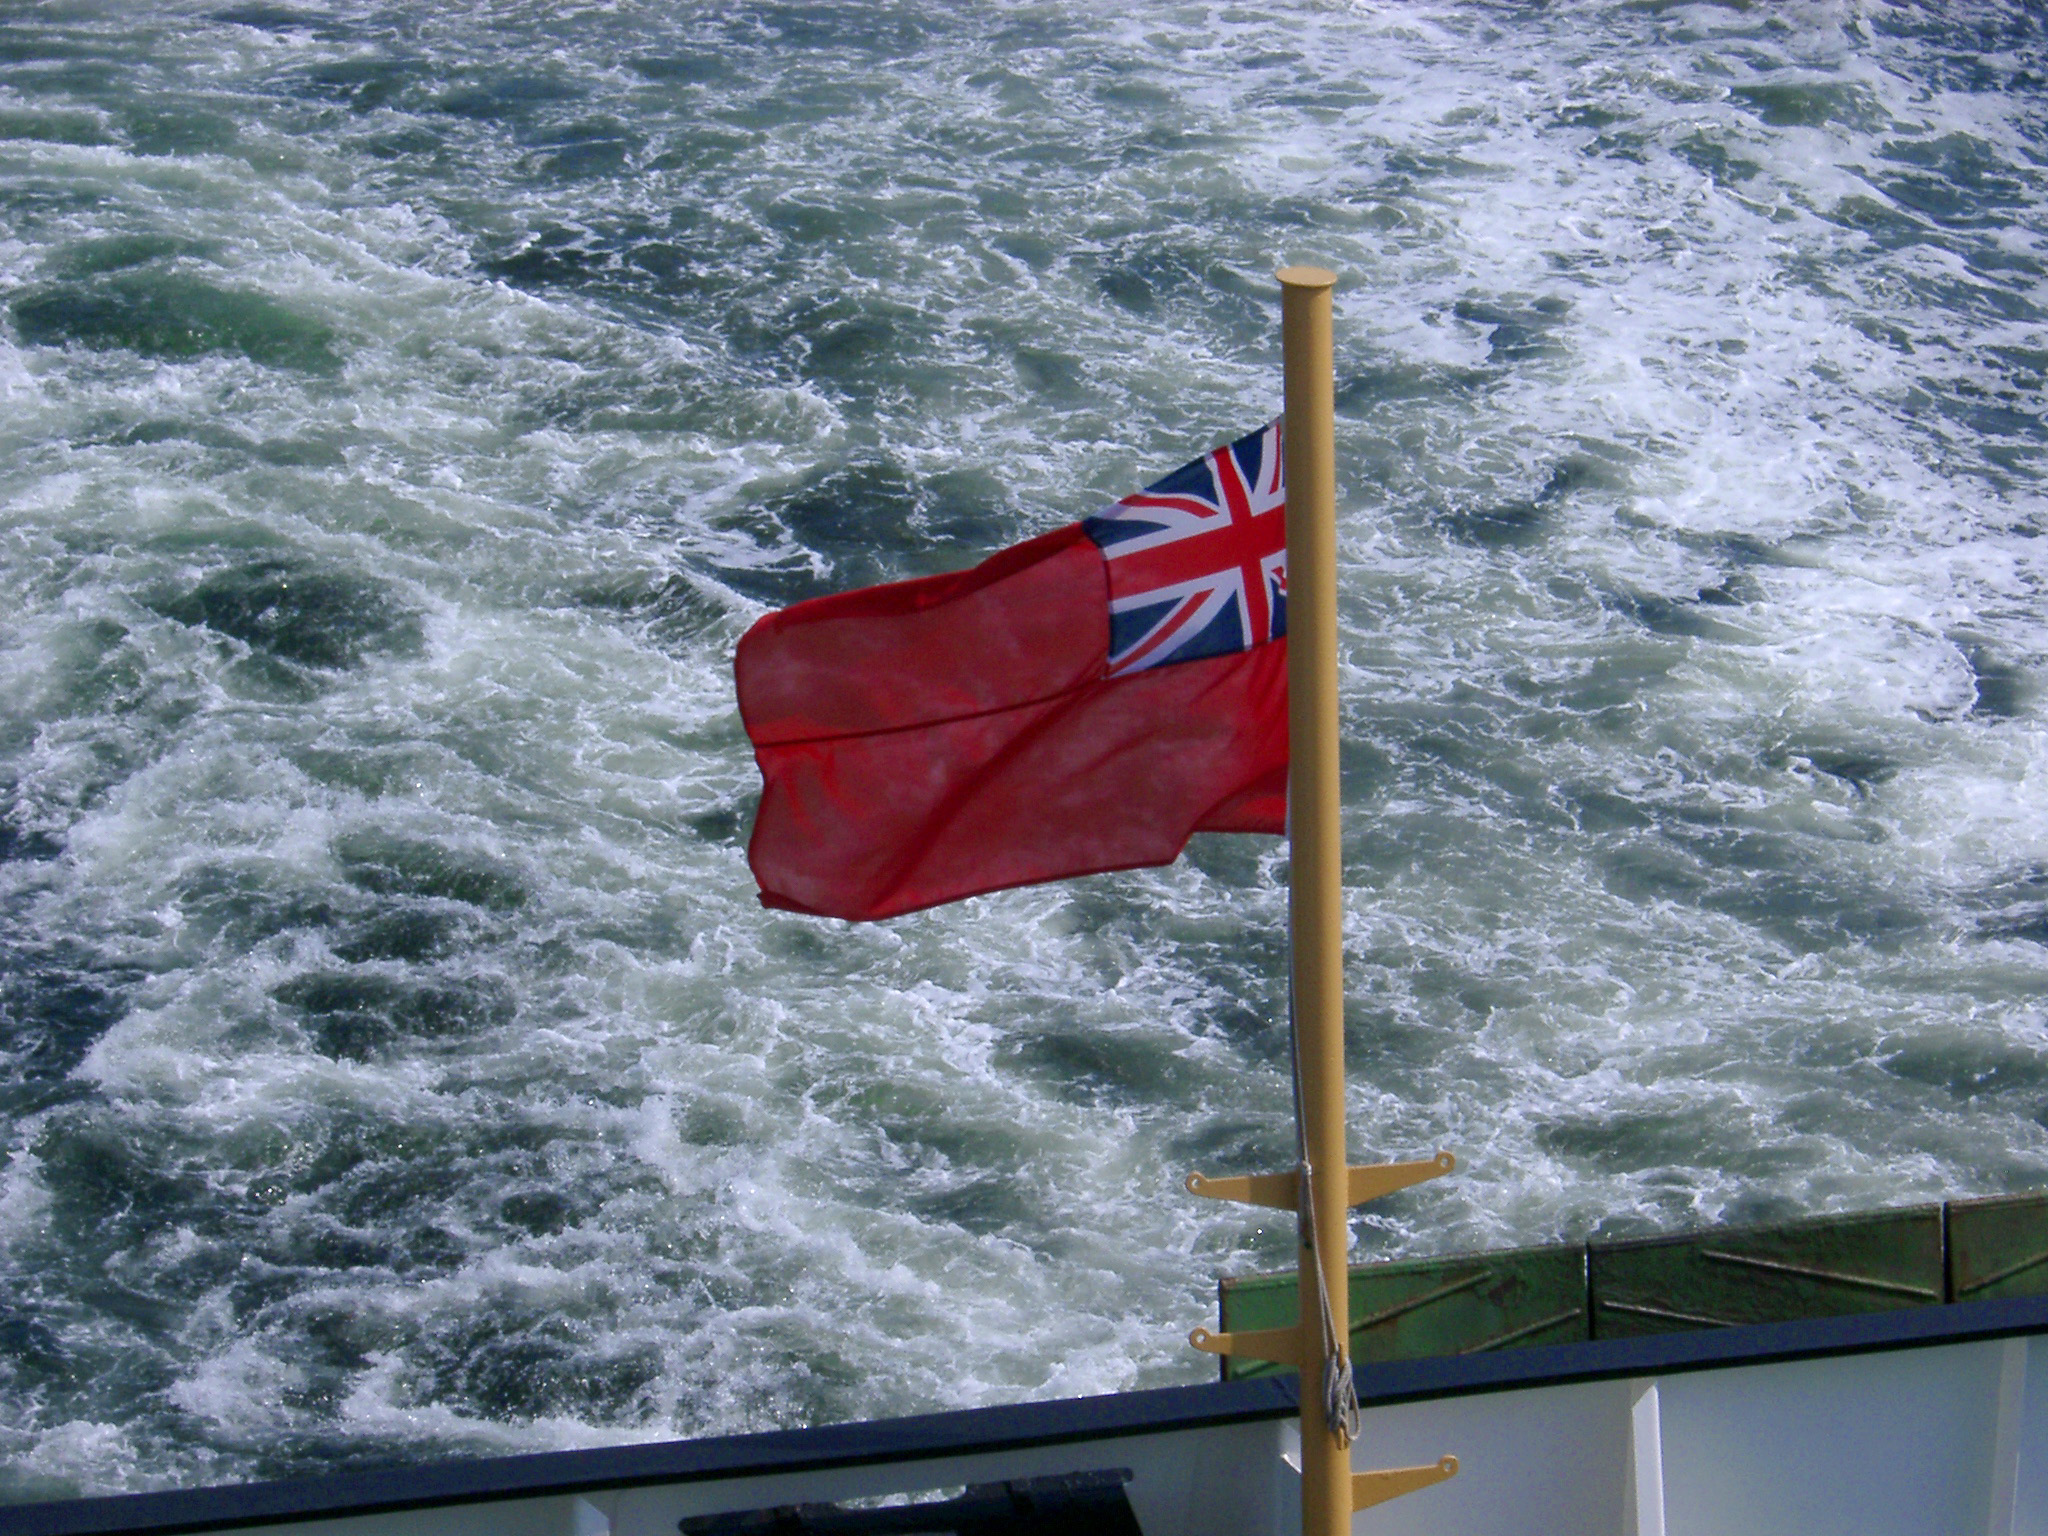 Red Scottish ensign flag flying off the stern of a ferry against the turbulence of the wake mid-ocean during a voyage